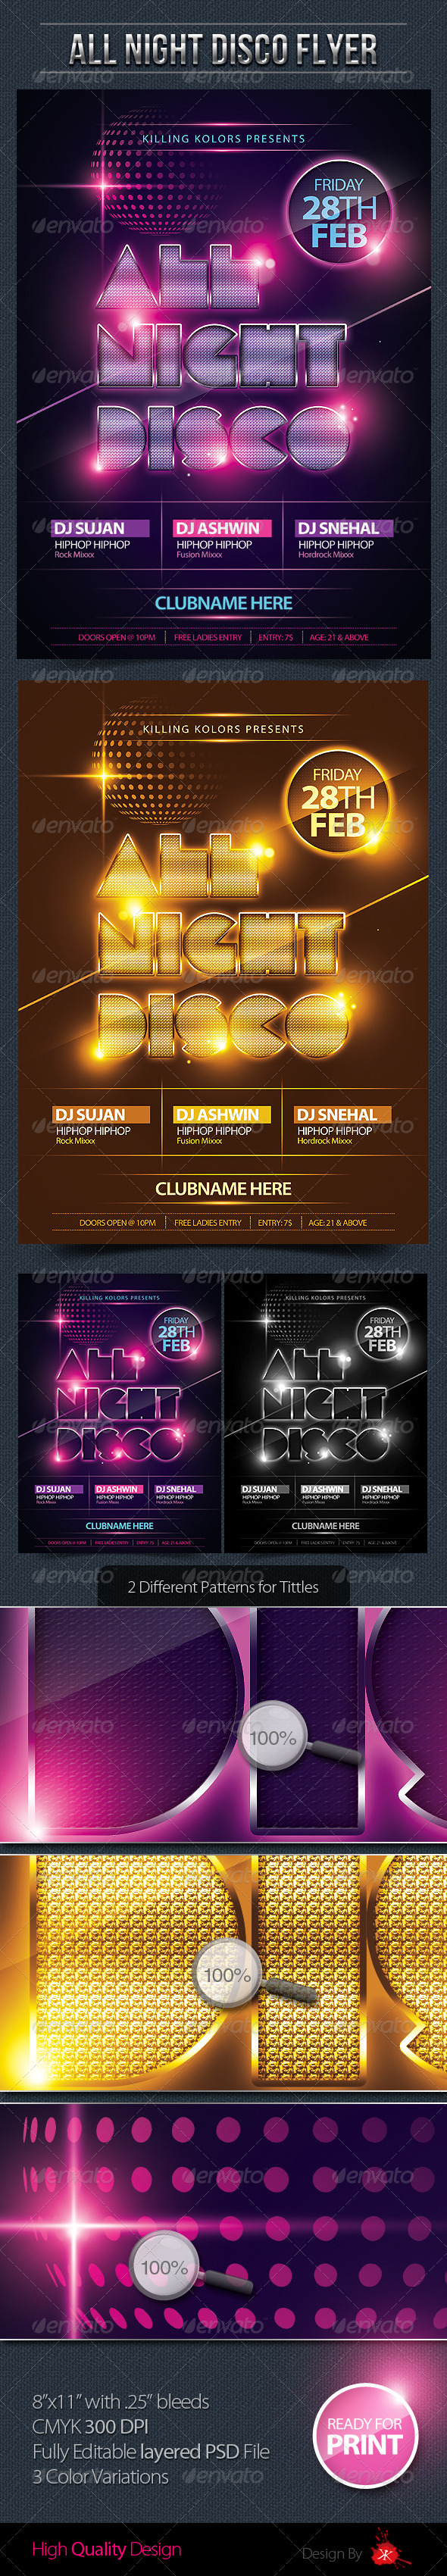 GraphicRiver All Night Disco Flyer 2732199